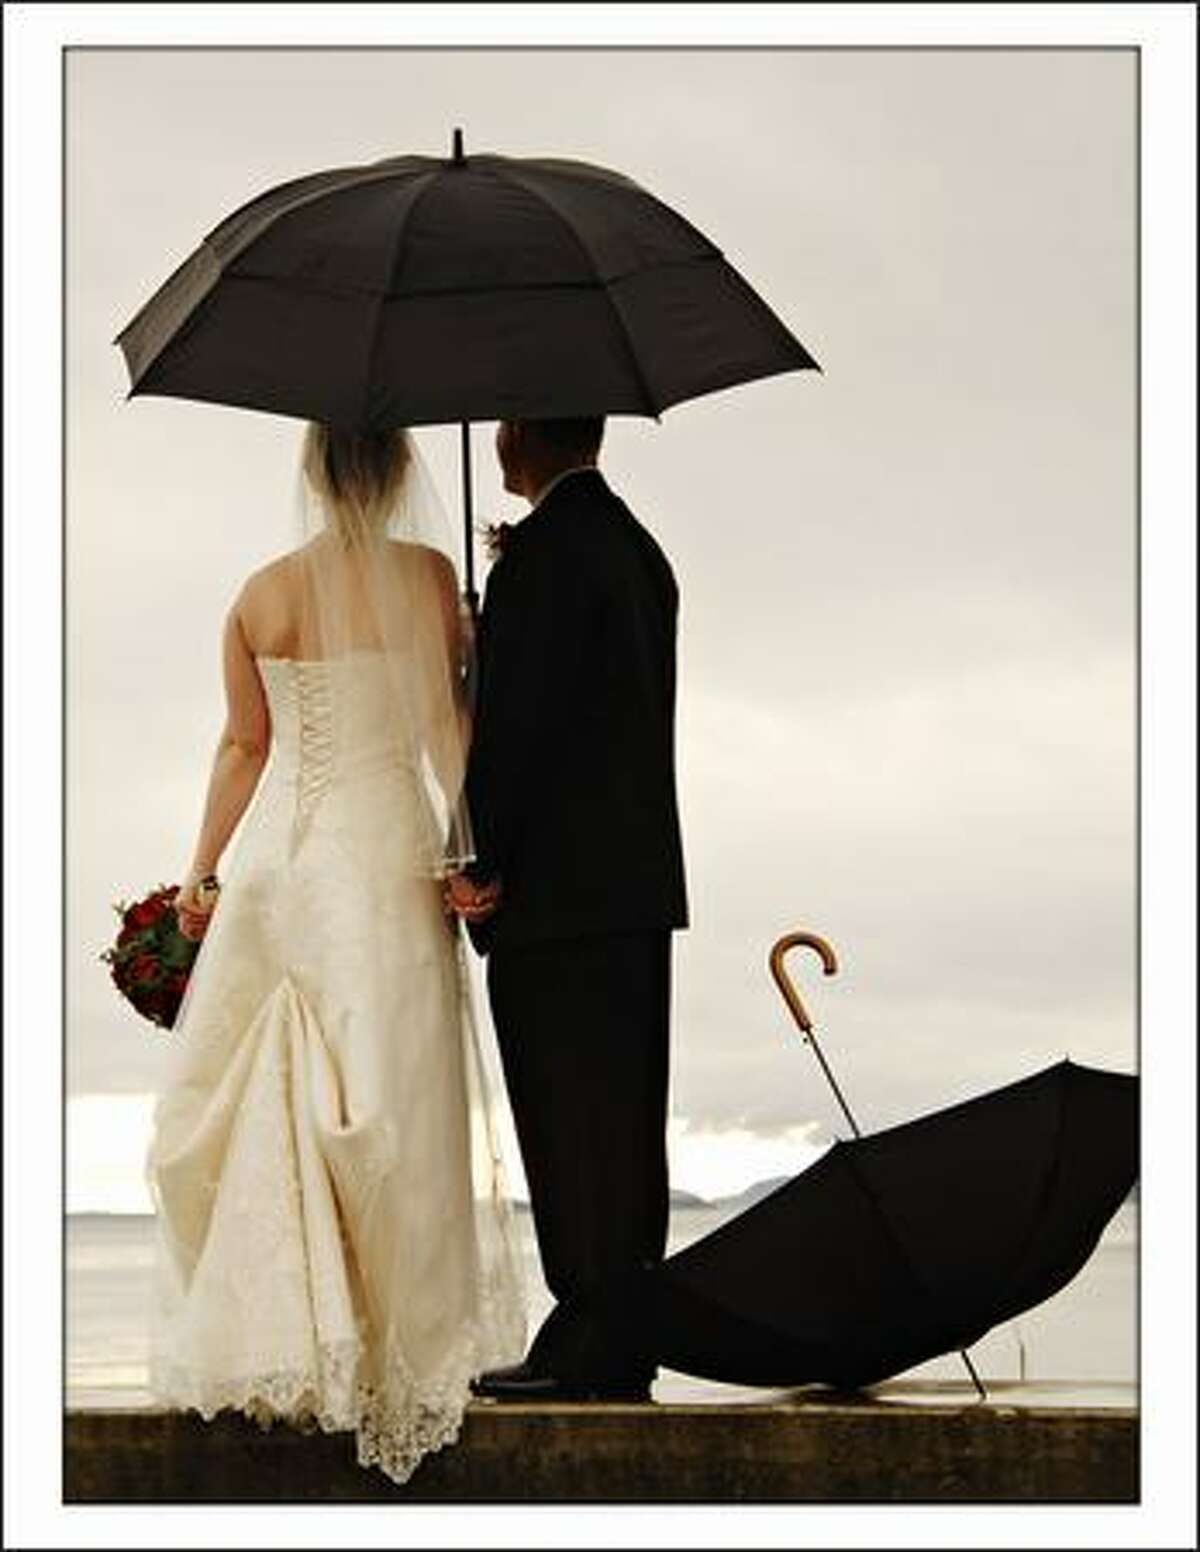 Photographer : See more by Evantide Editor's comment: The umbrellas balance the frame nicely. And the feeling of the couple looking away adds to its magic.